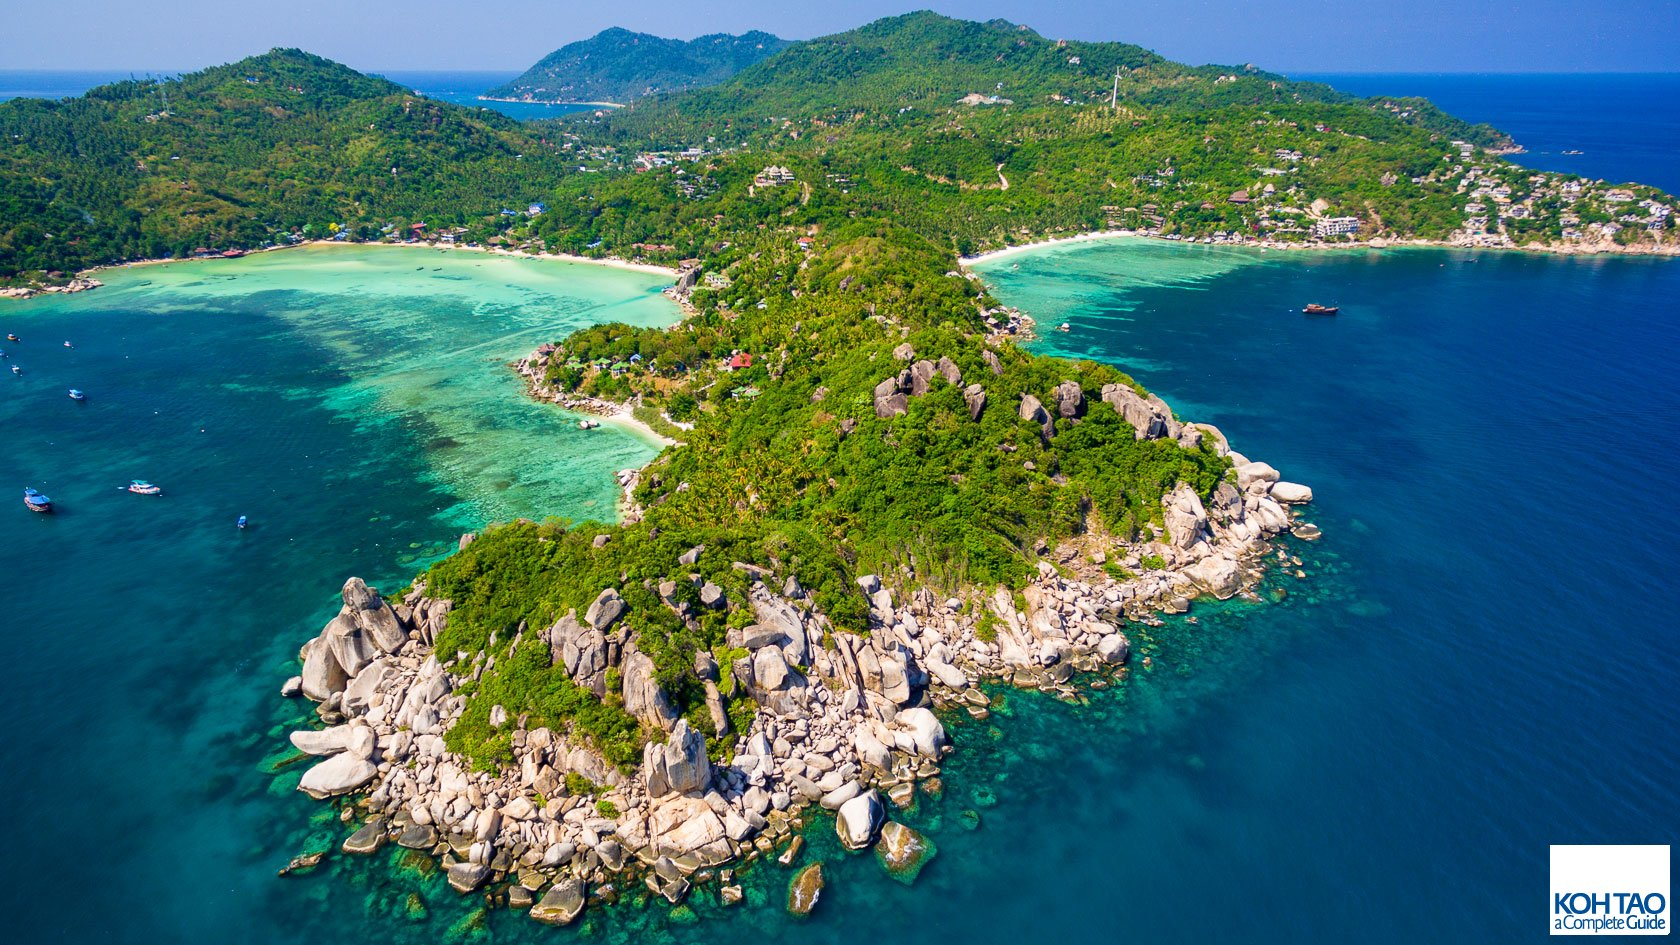 Koh Tao, Thailand – Tourist Destinations